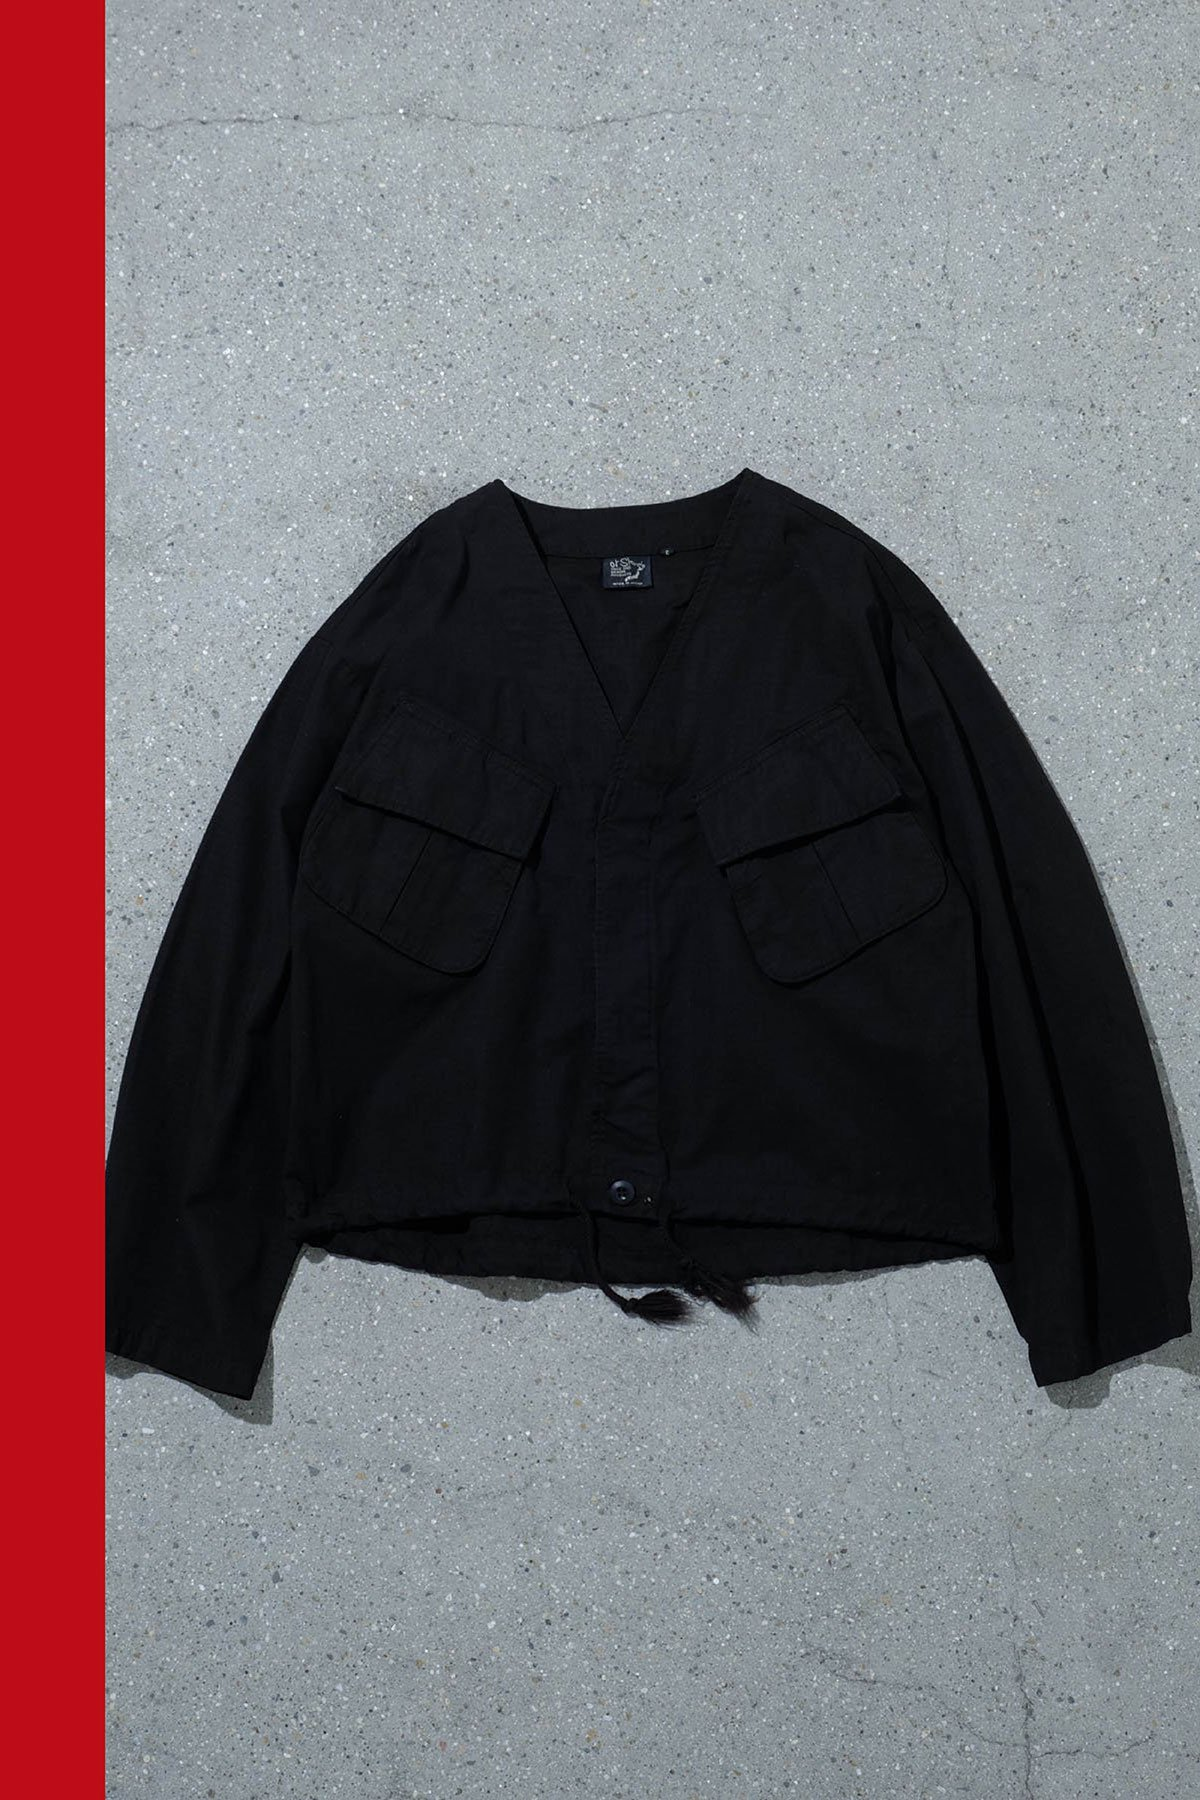 仲津3 / US ARMY FATIGUE  SHIRT JACKET